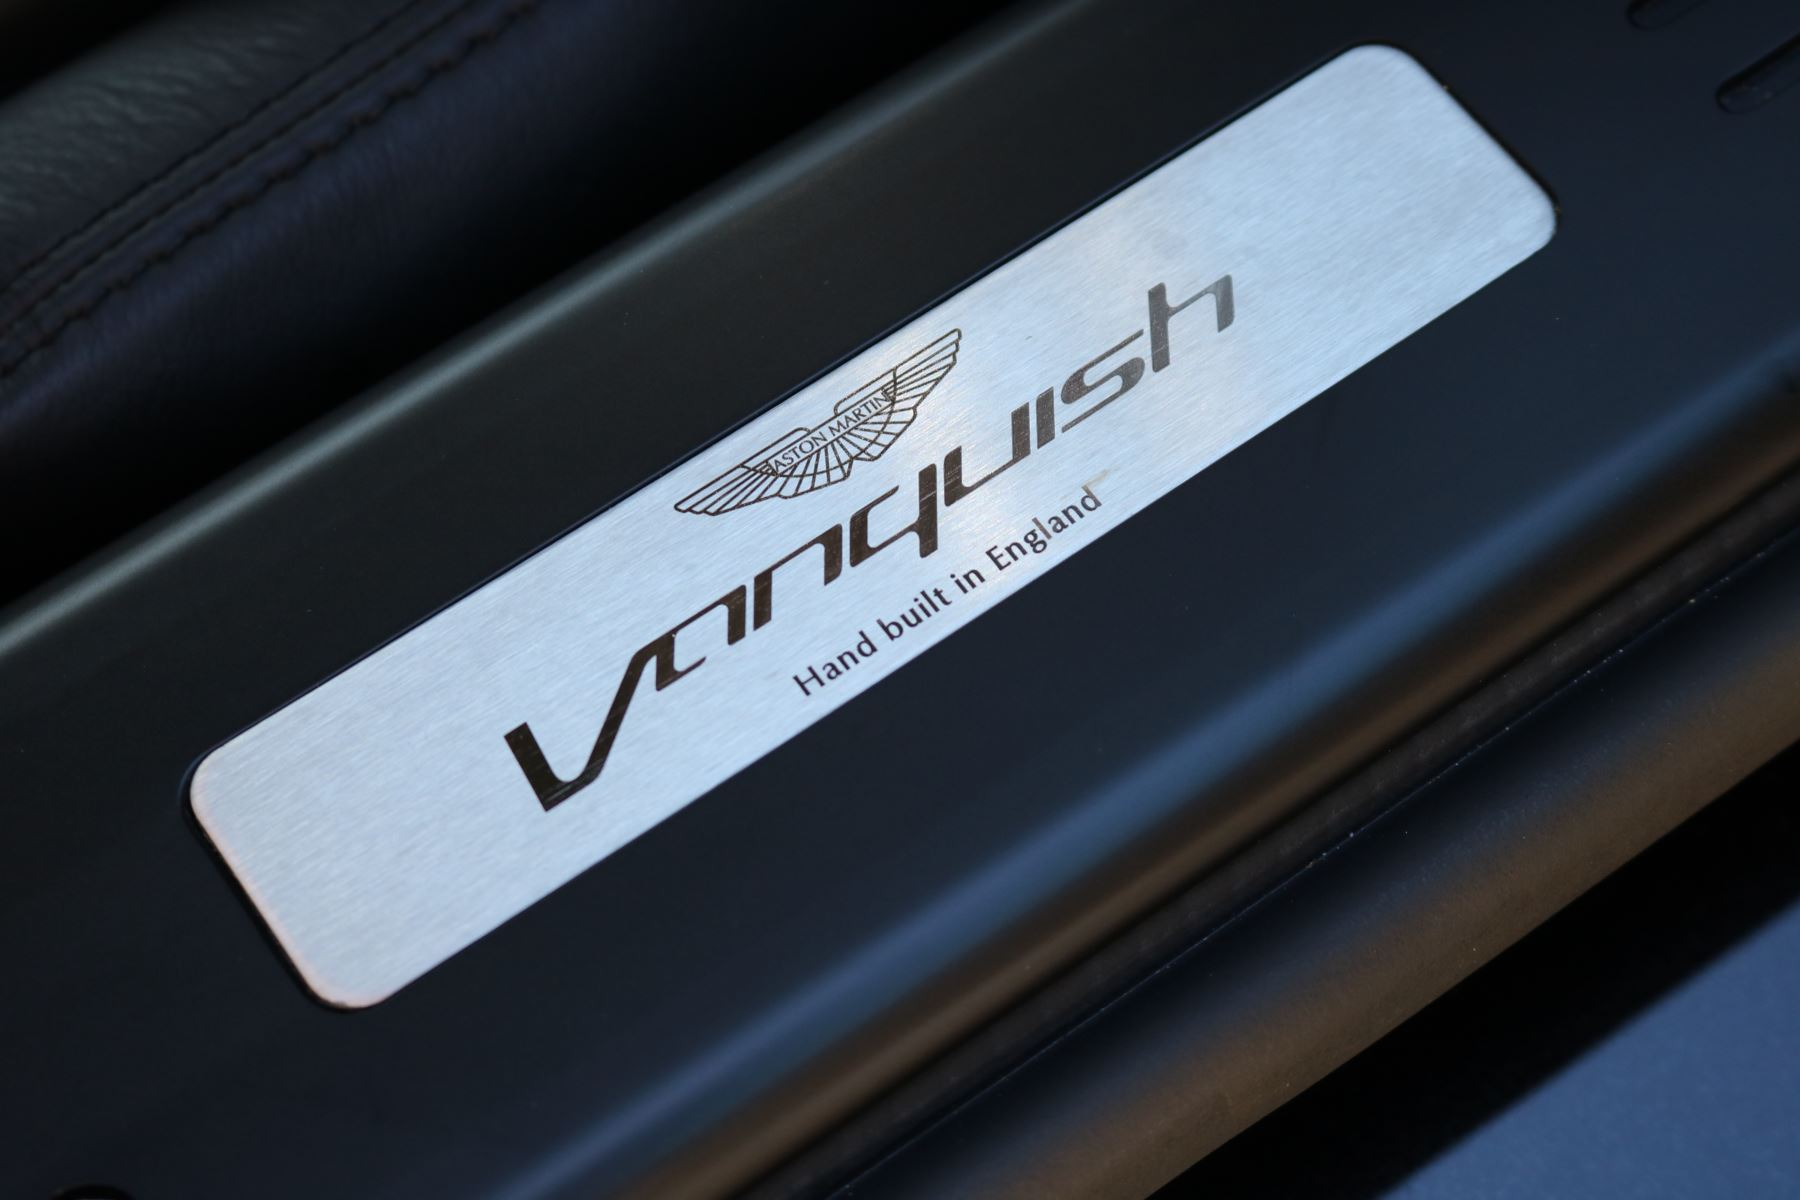 Aston Martin Vanquish V12 [568] 2+2 2dr Touchtronic 8 speed Carbon 17 Model Year Apple Car Play  image 4